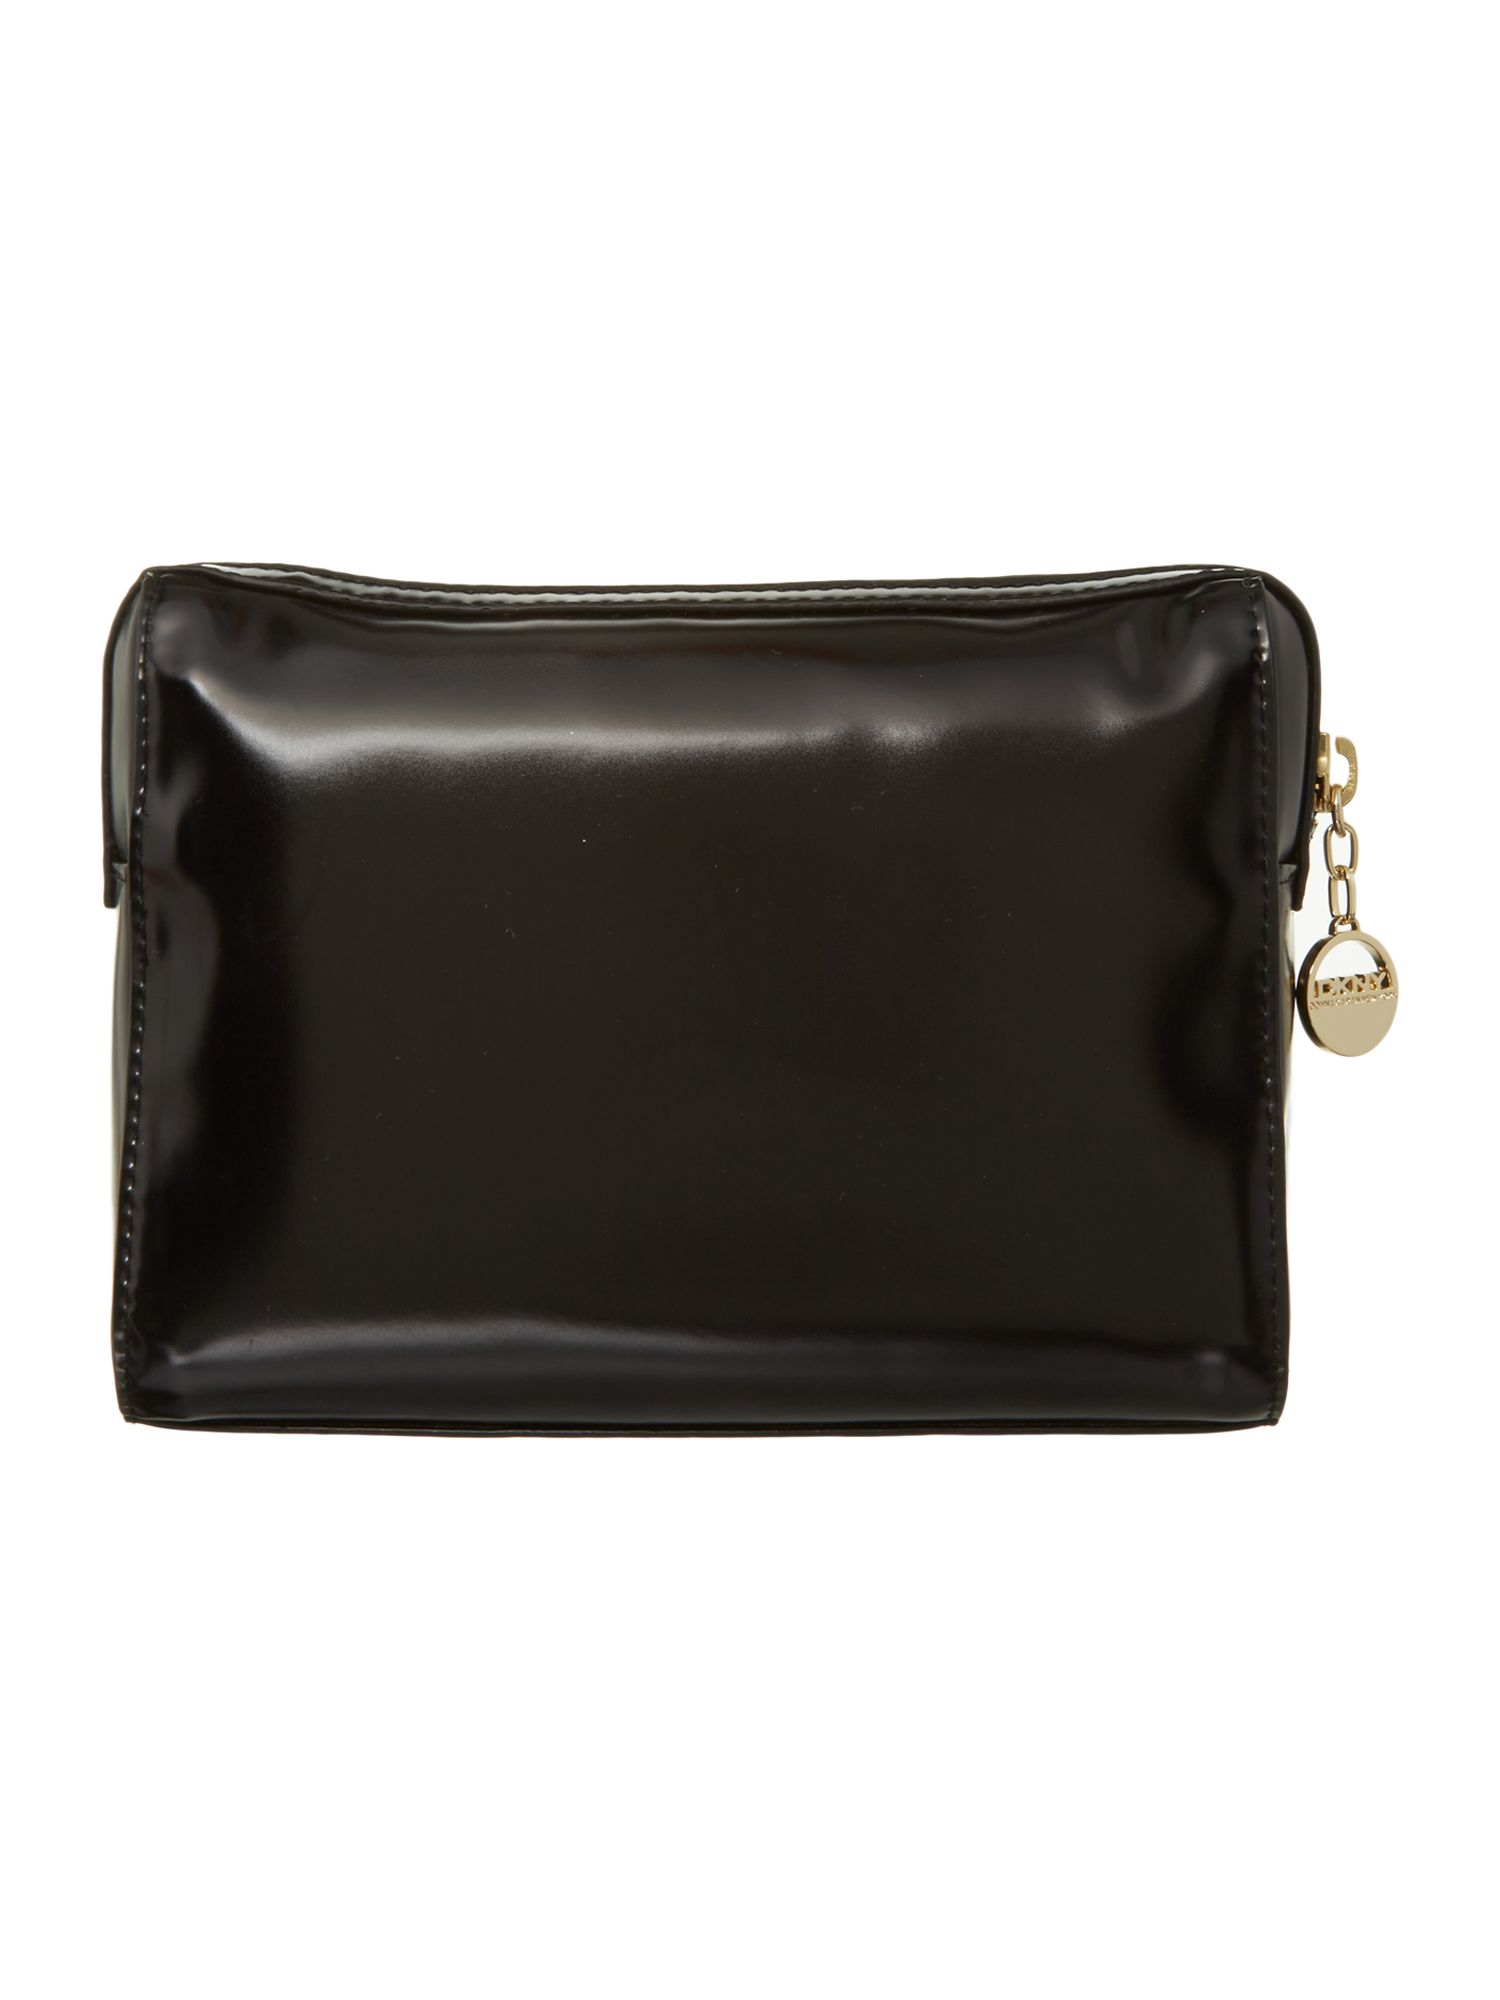 Hudson black cosmetic bag